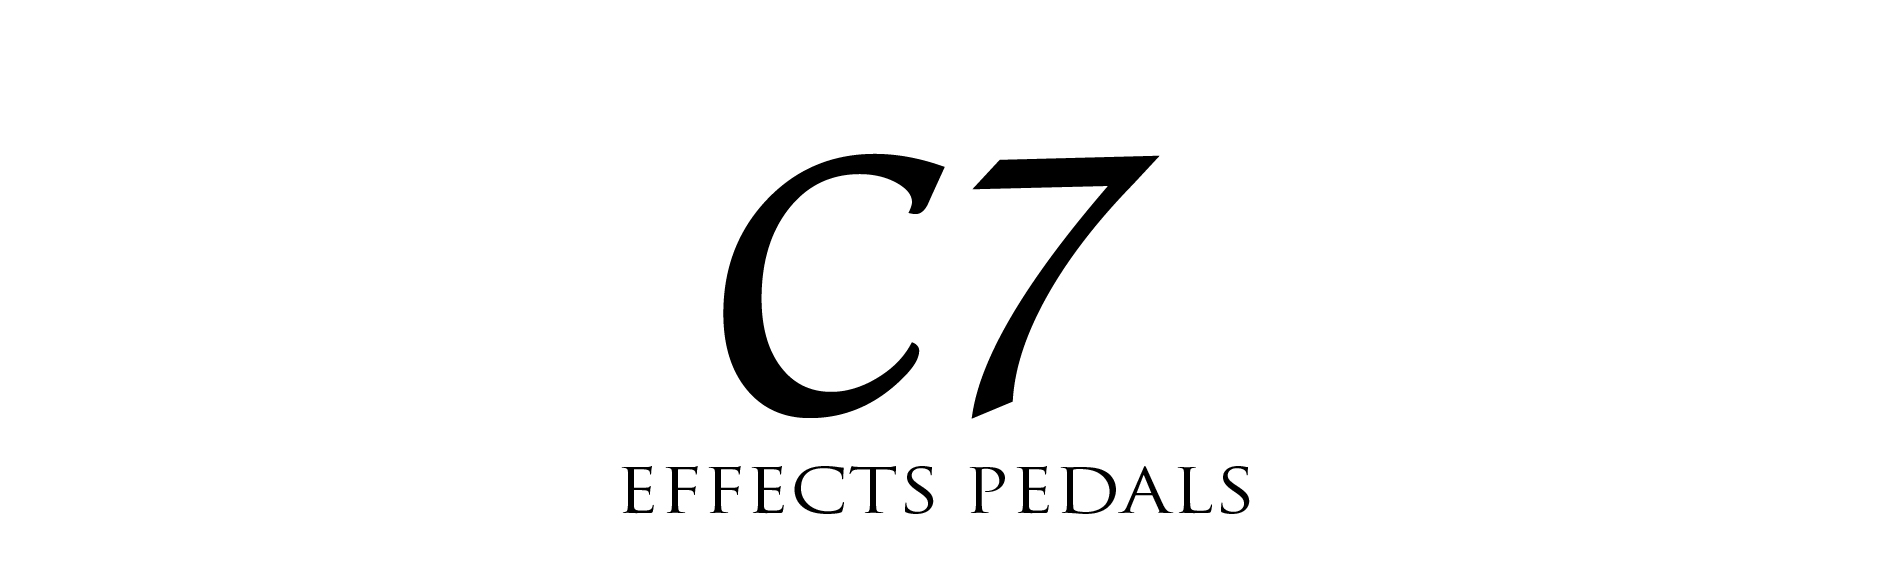 C SEVEN EFFECTS PEDALS